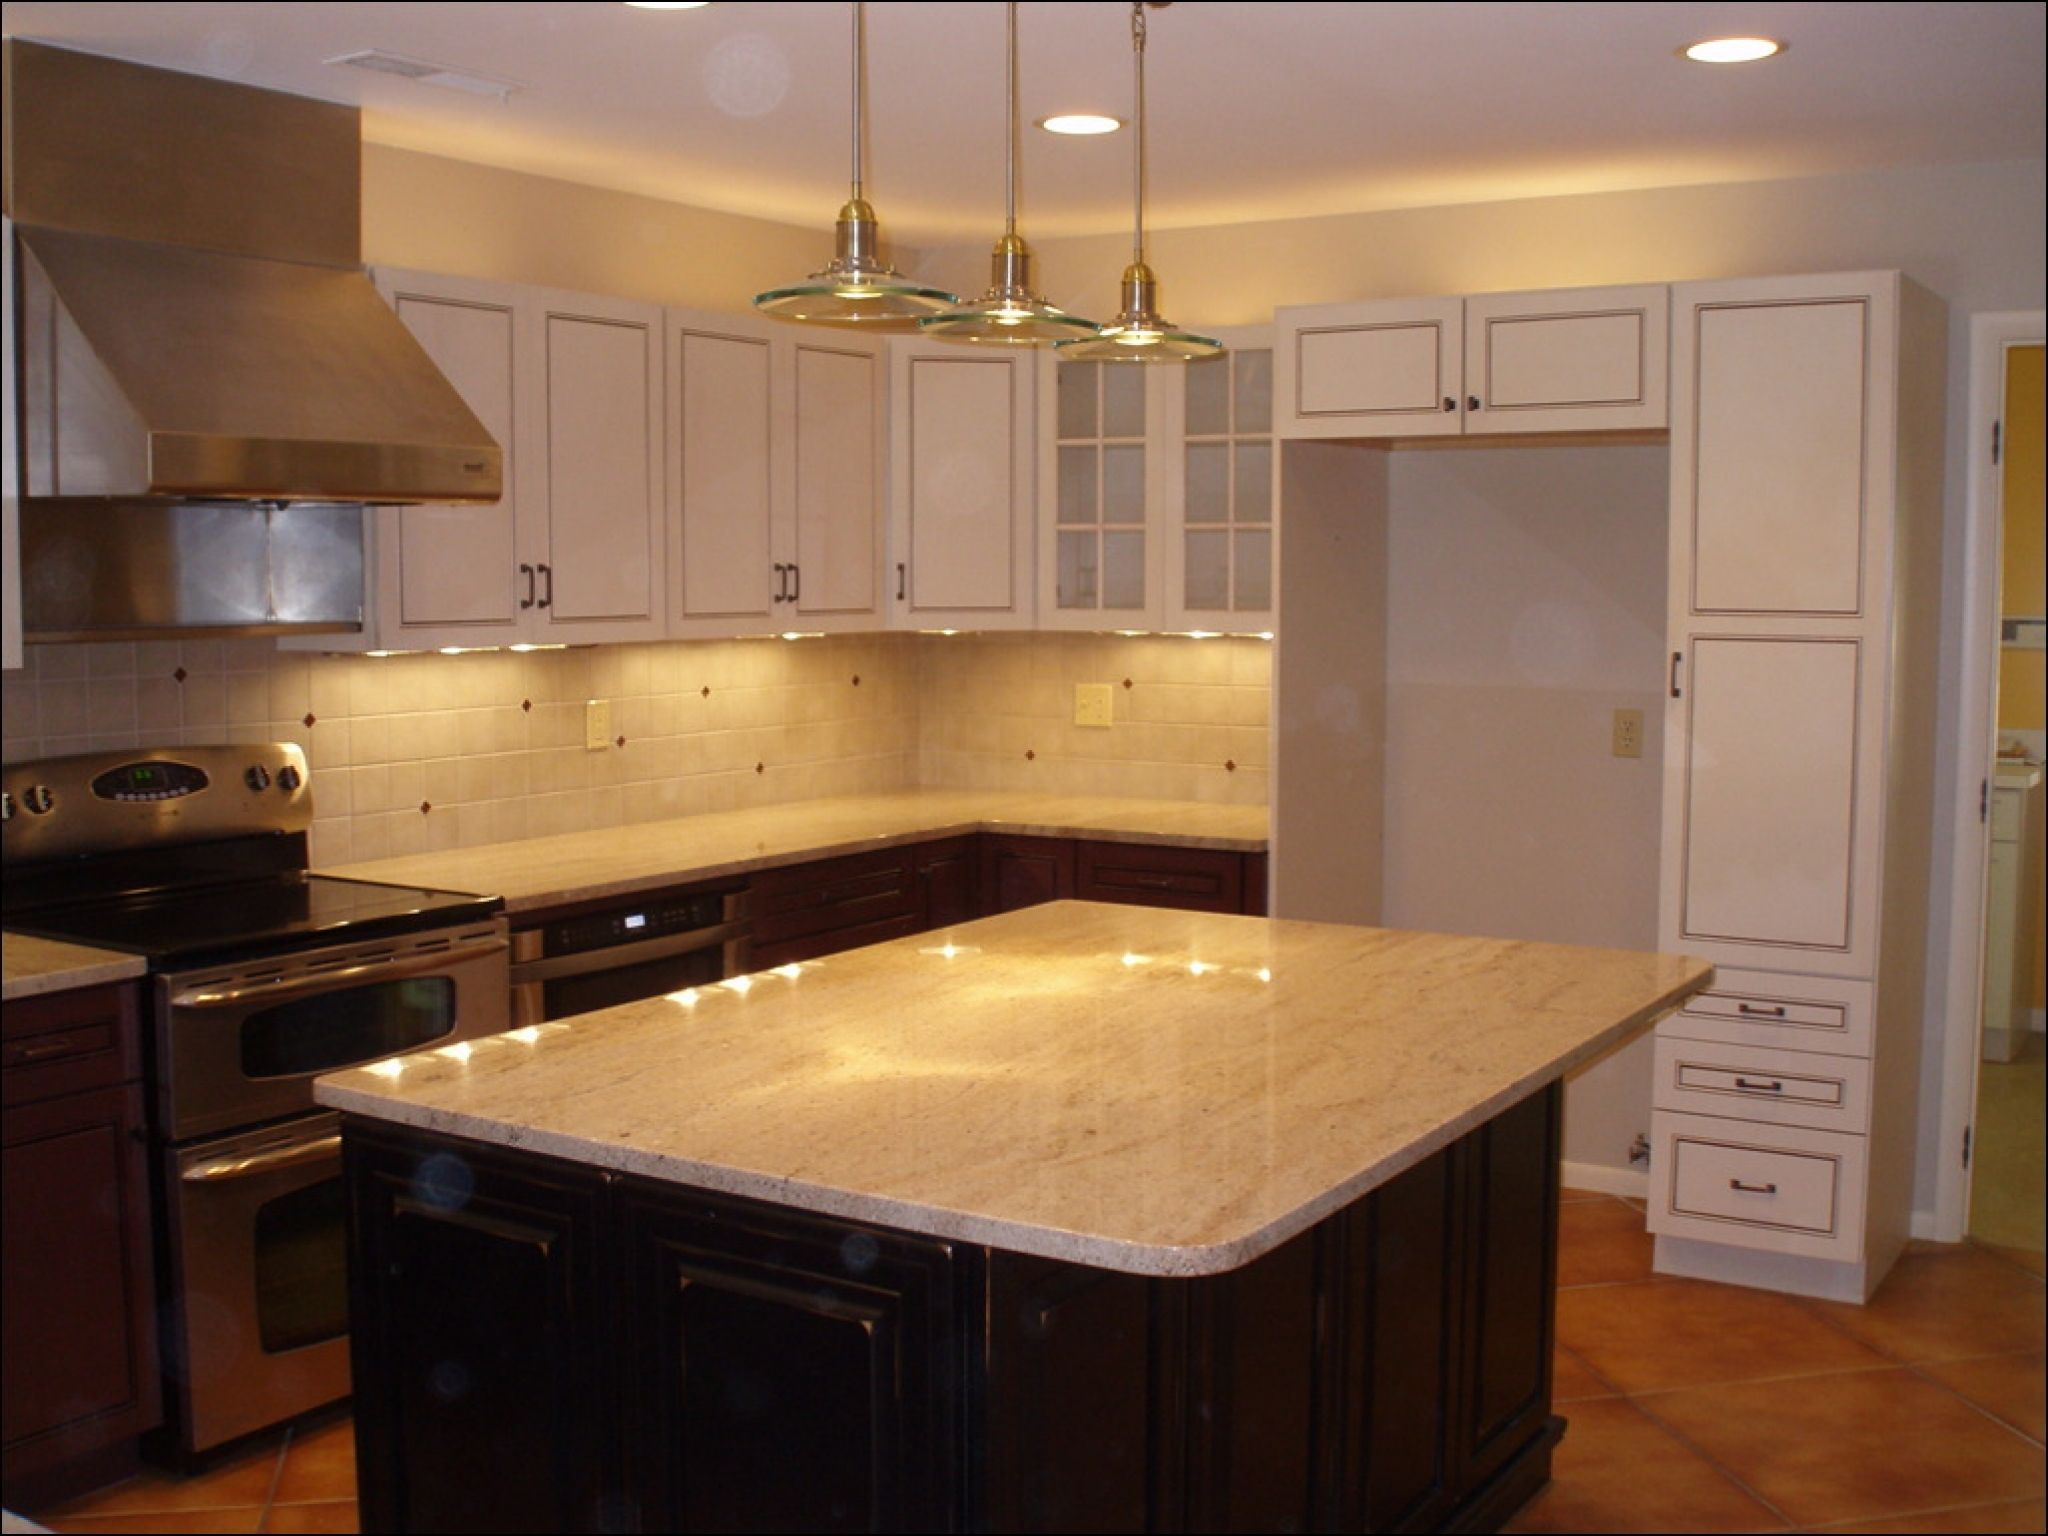 lowes kitchen cabinets in stock kitchen decor ideas on a bud